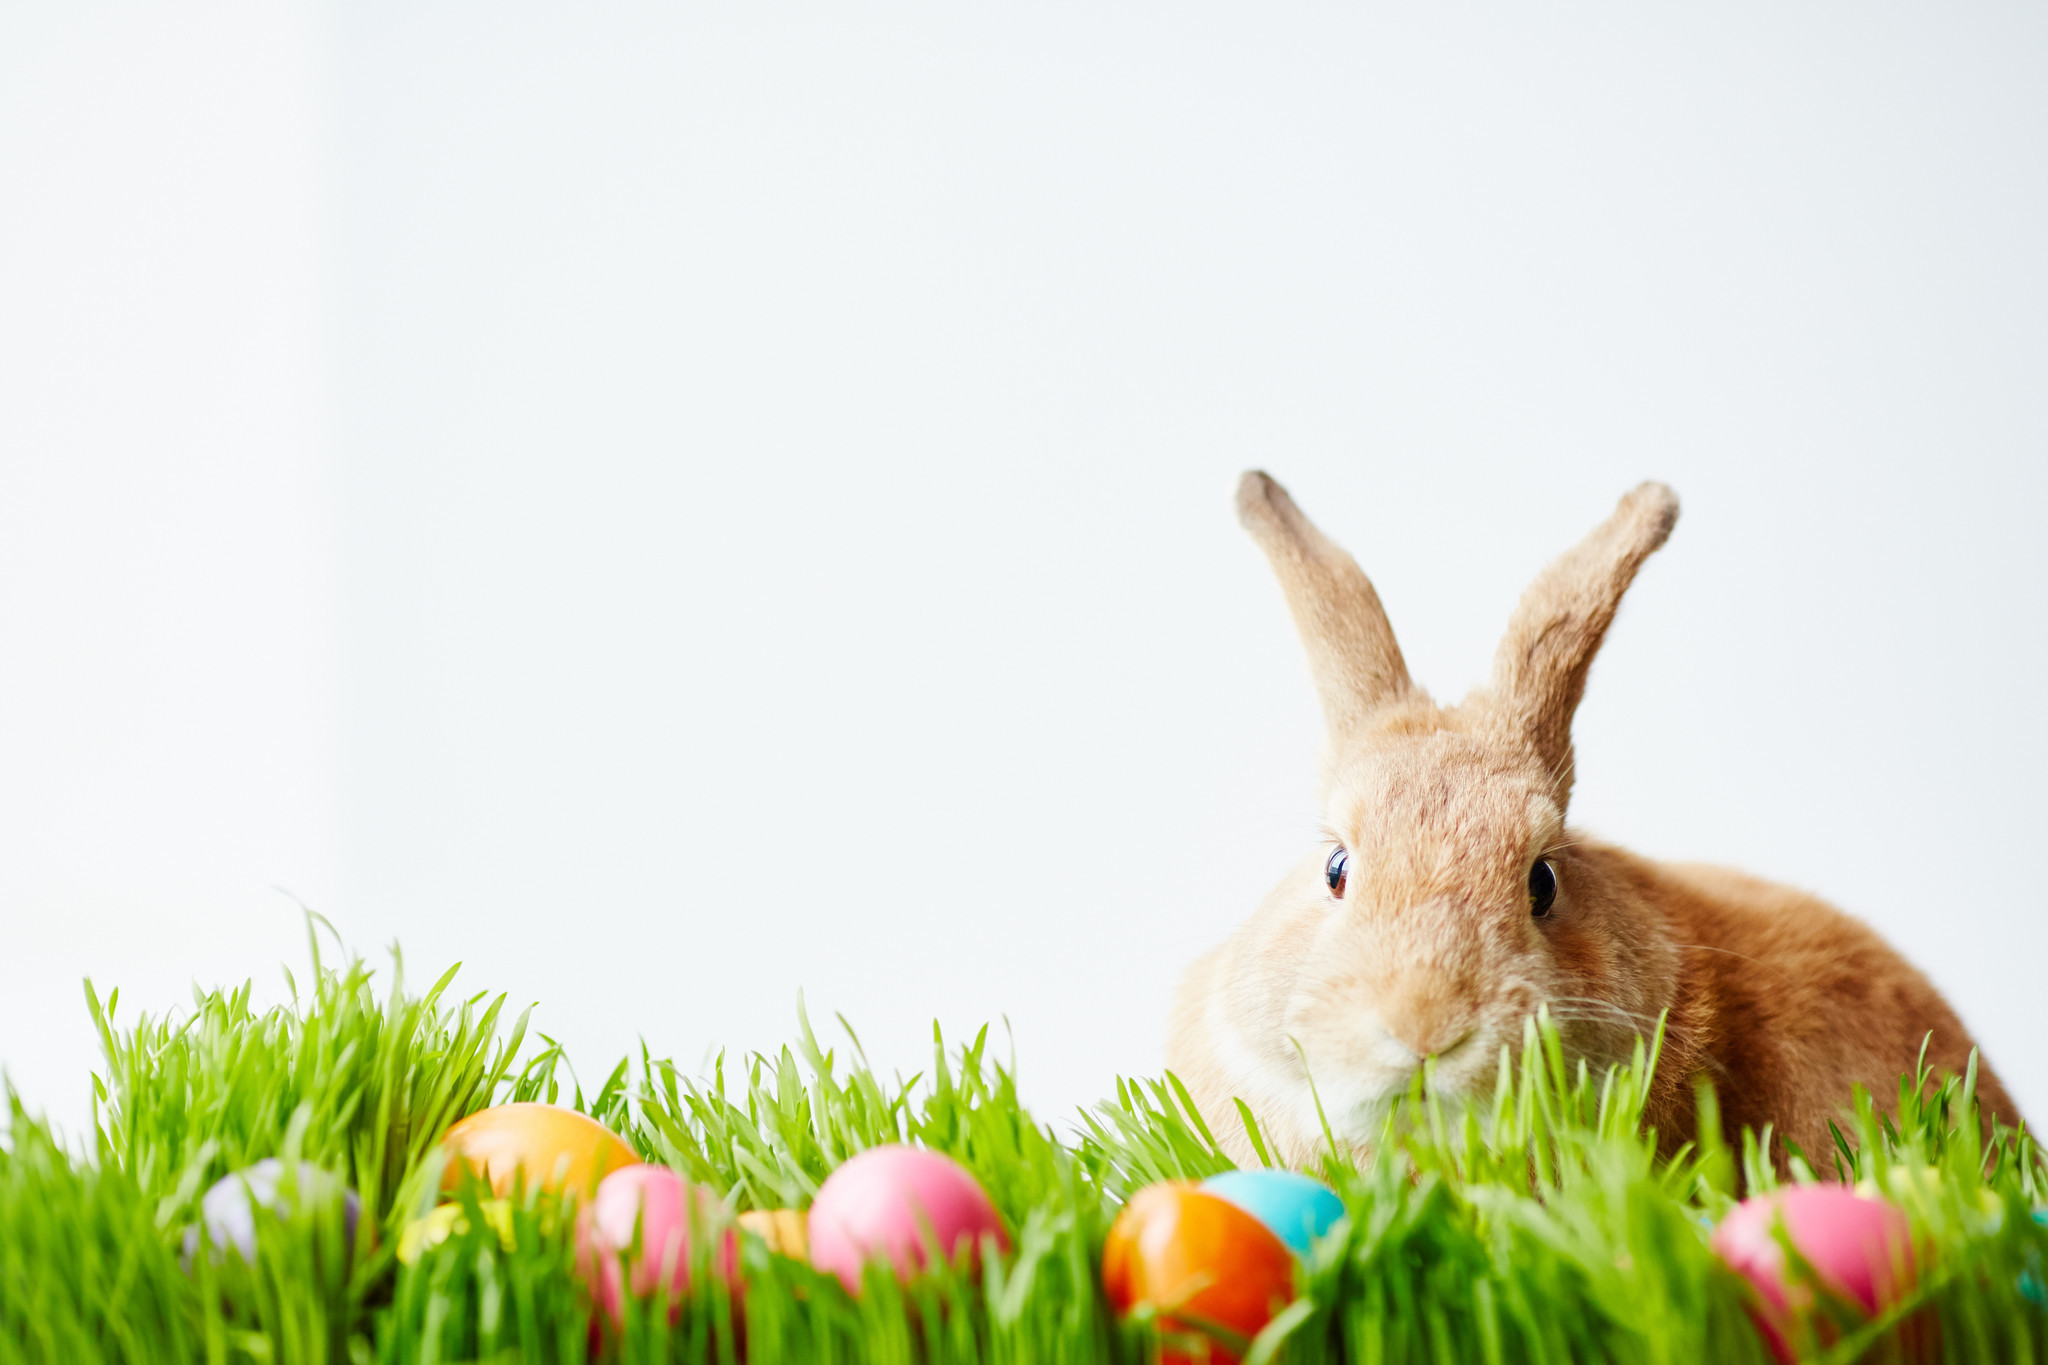 Don't get a rabbit just because it's Easter - Chicago Tribune